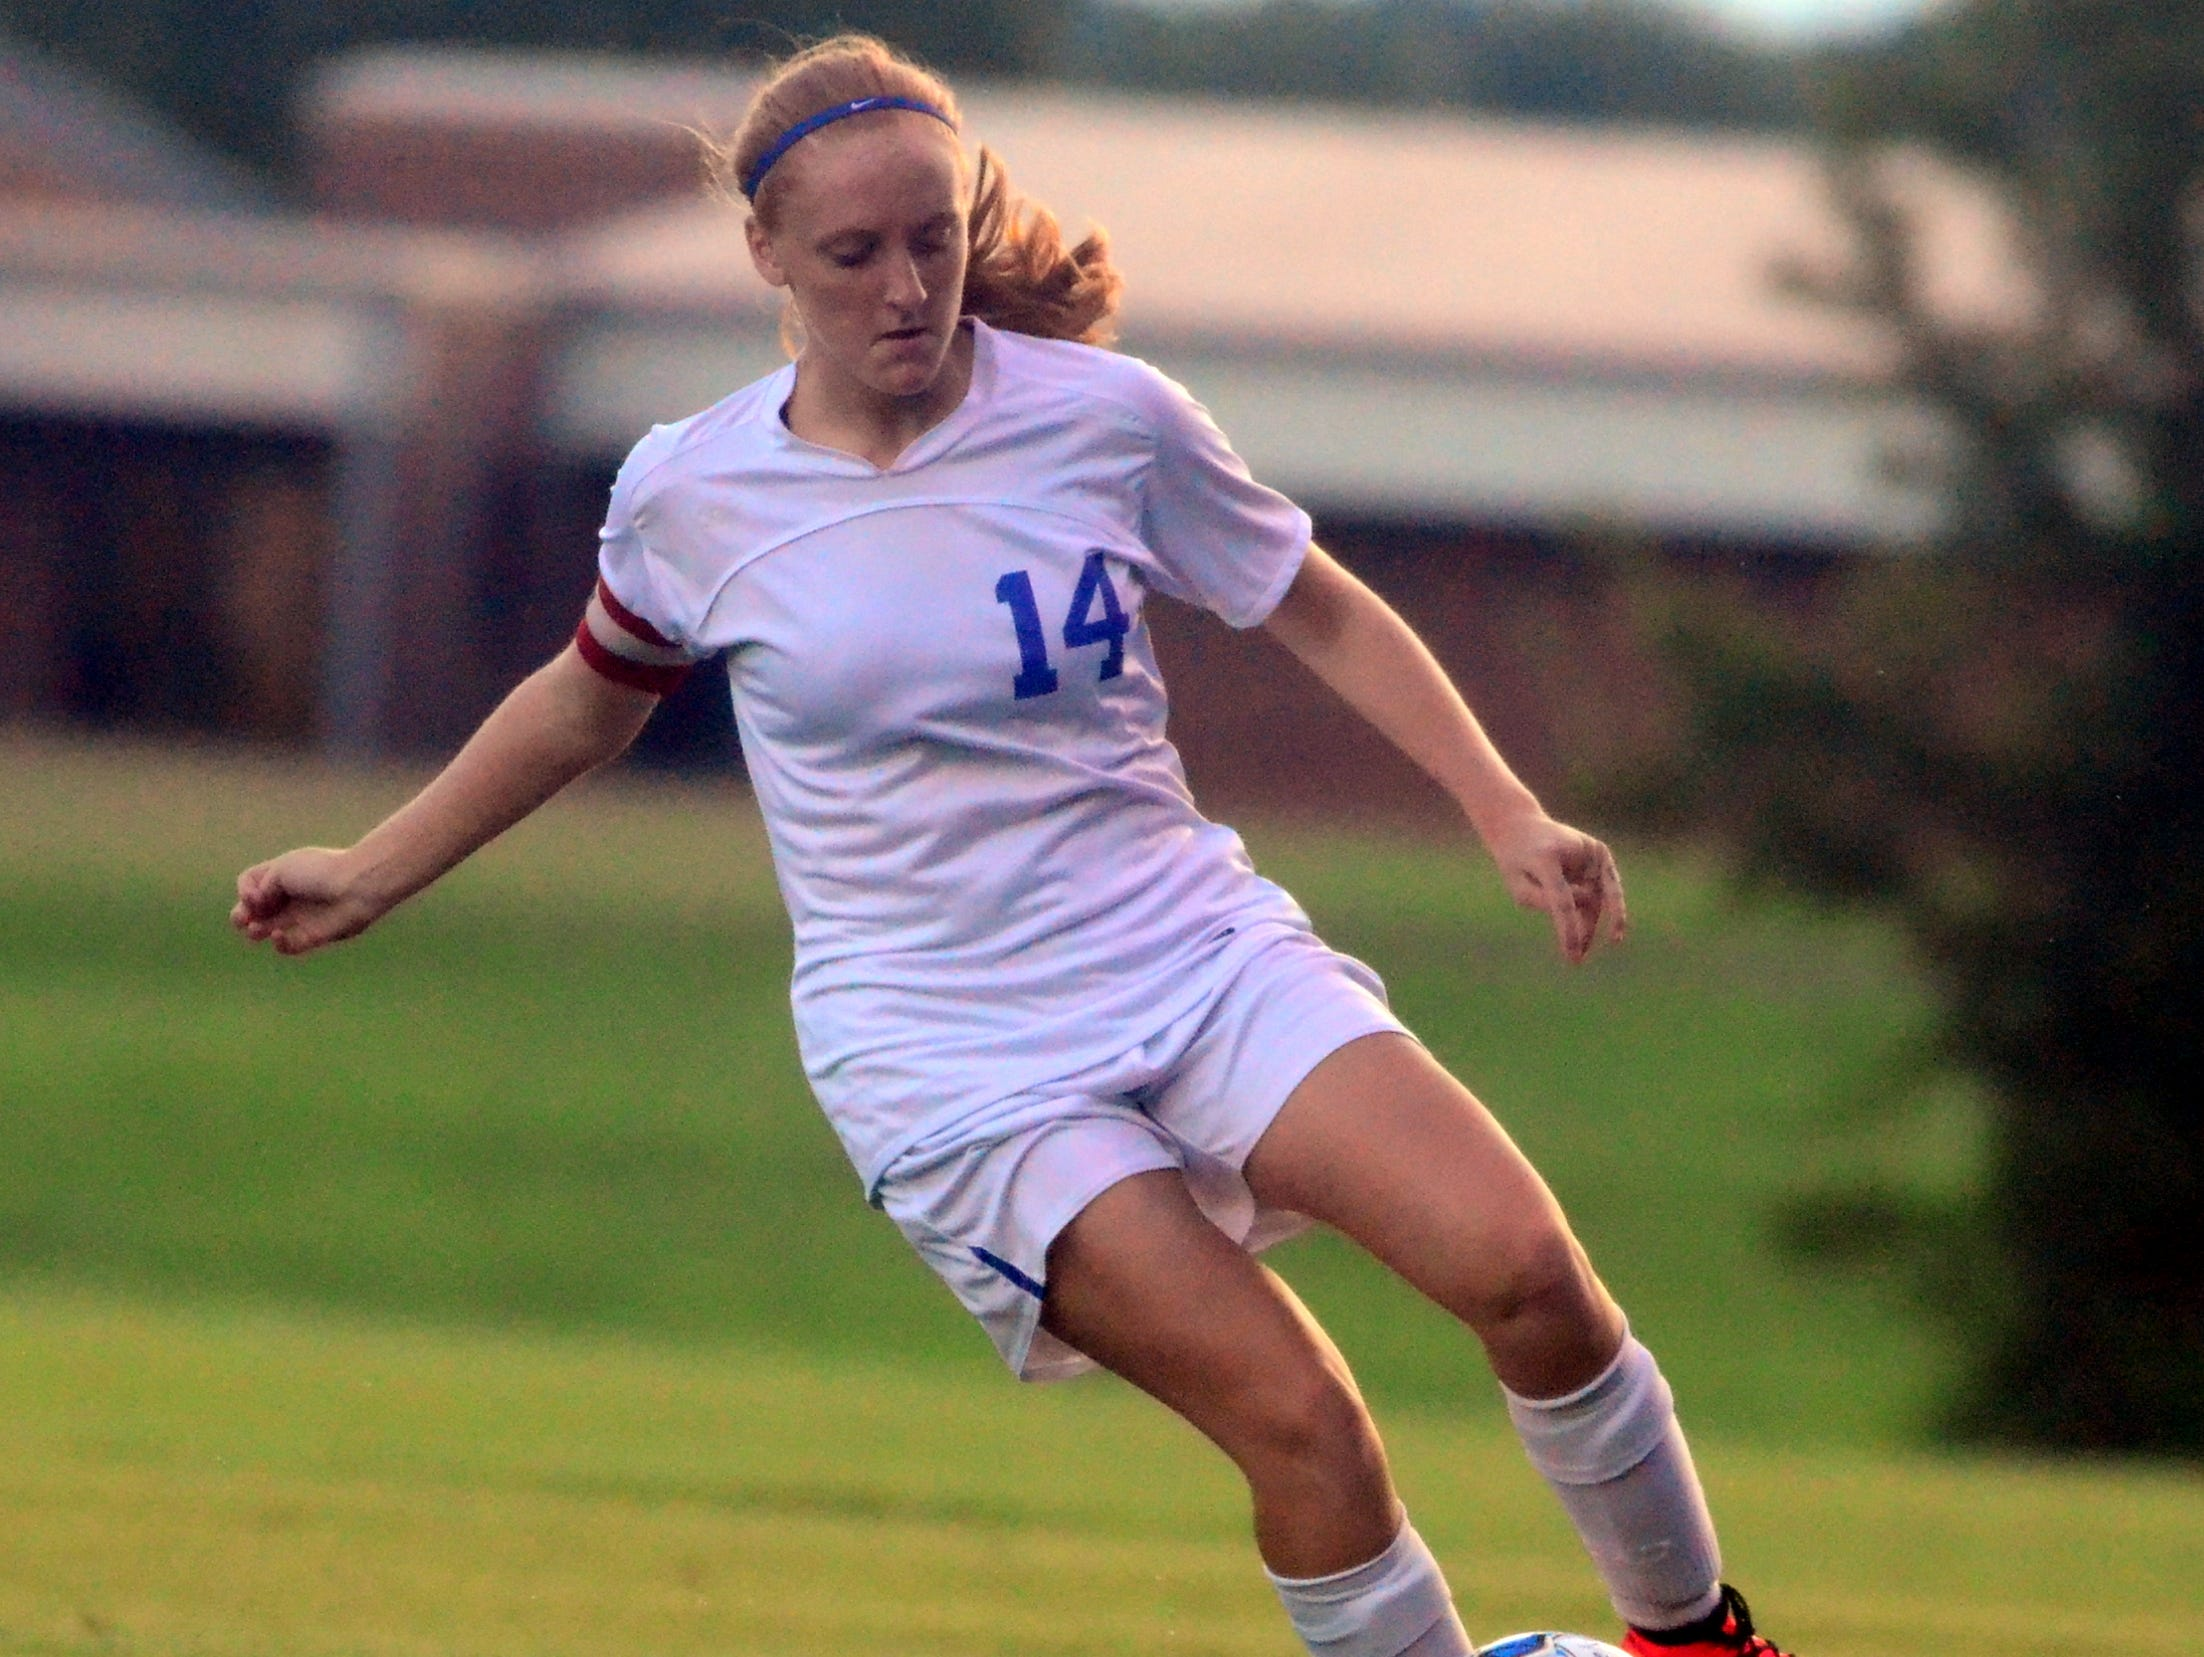 White House High junior Madisson Davis scored one of the Lady Devils' goals in their 3-2 victory over Gallatin on Thursday evening.